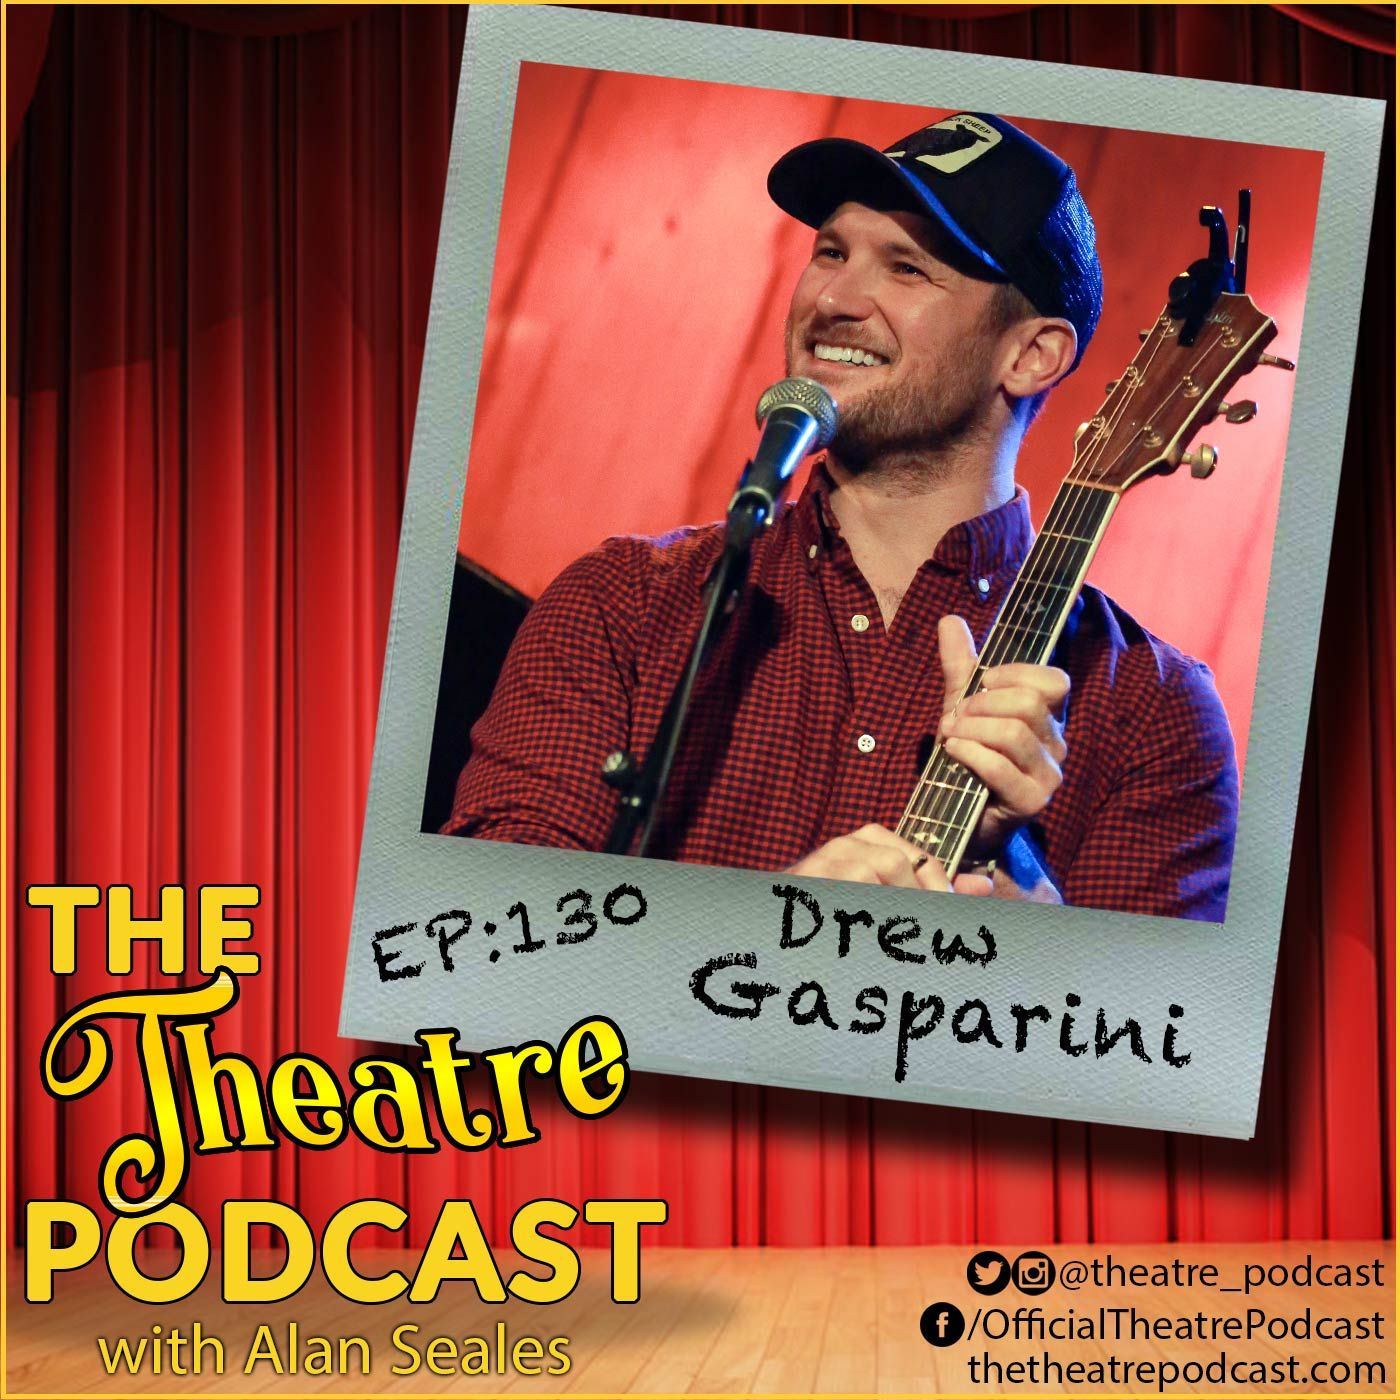 Ep130 - Drew Gasparini: Composer for The Karate Kid Musical, The Skittles Musical, Smash, and all-around good guy